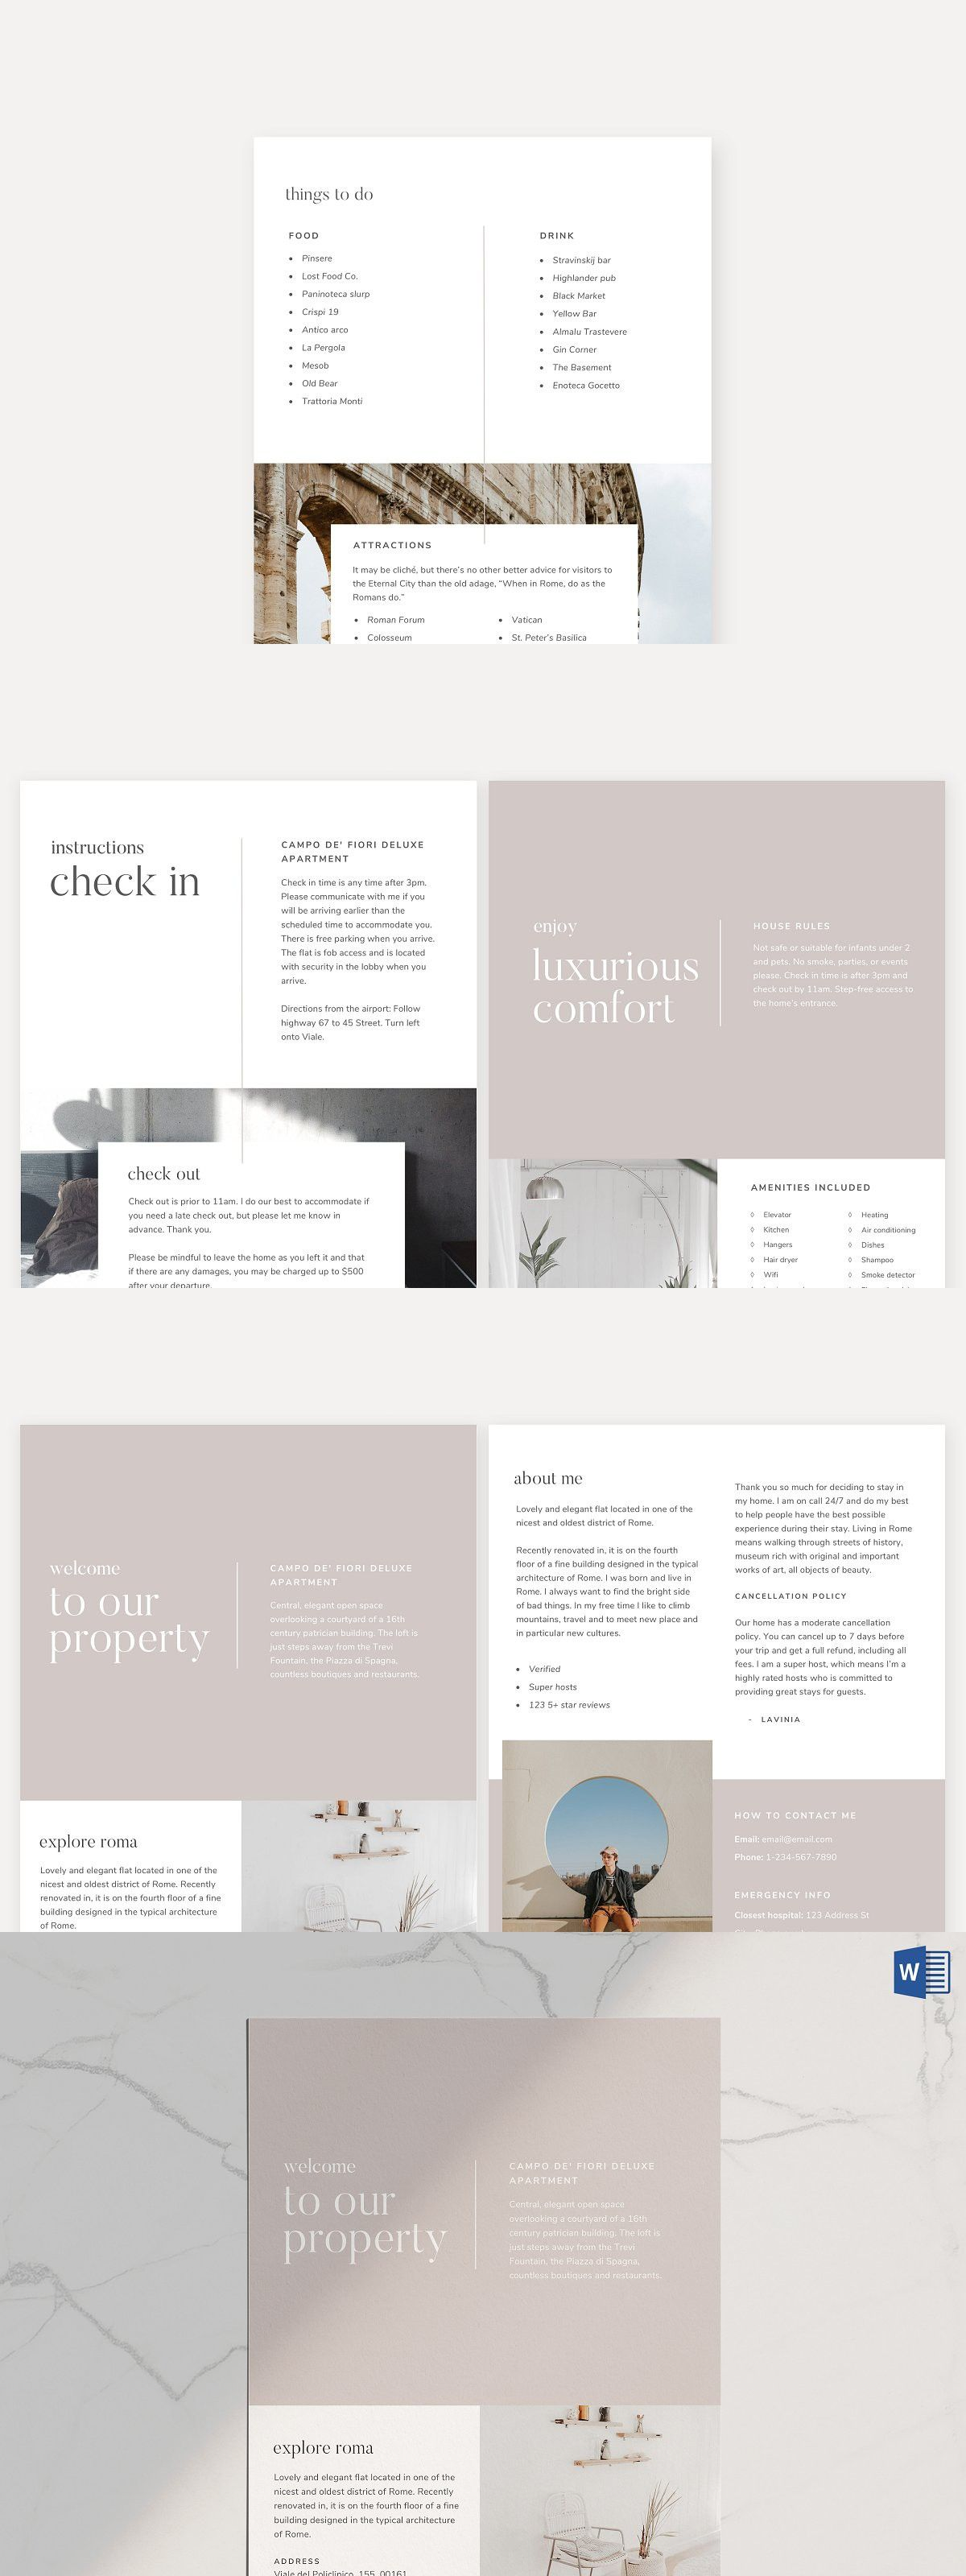 Airbnb Welcome Book Template Real Estate Flyers In 2019 Airbnb Design Airbnb House Rules